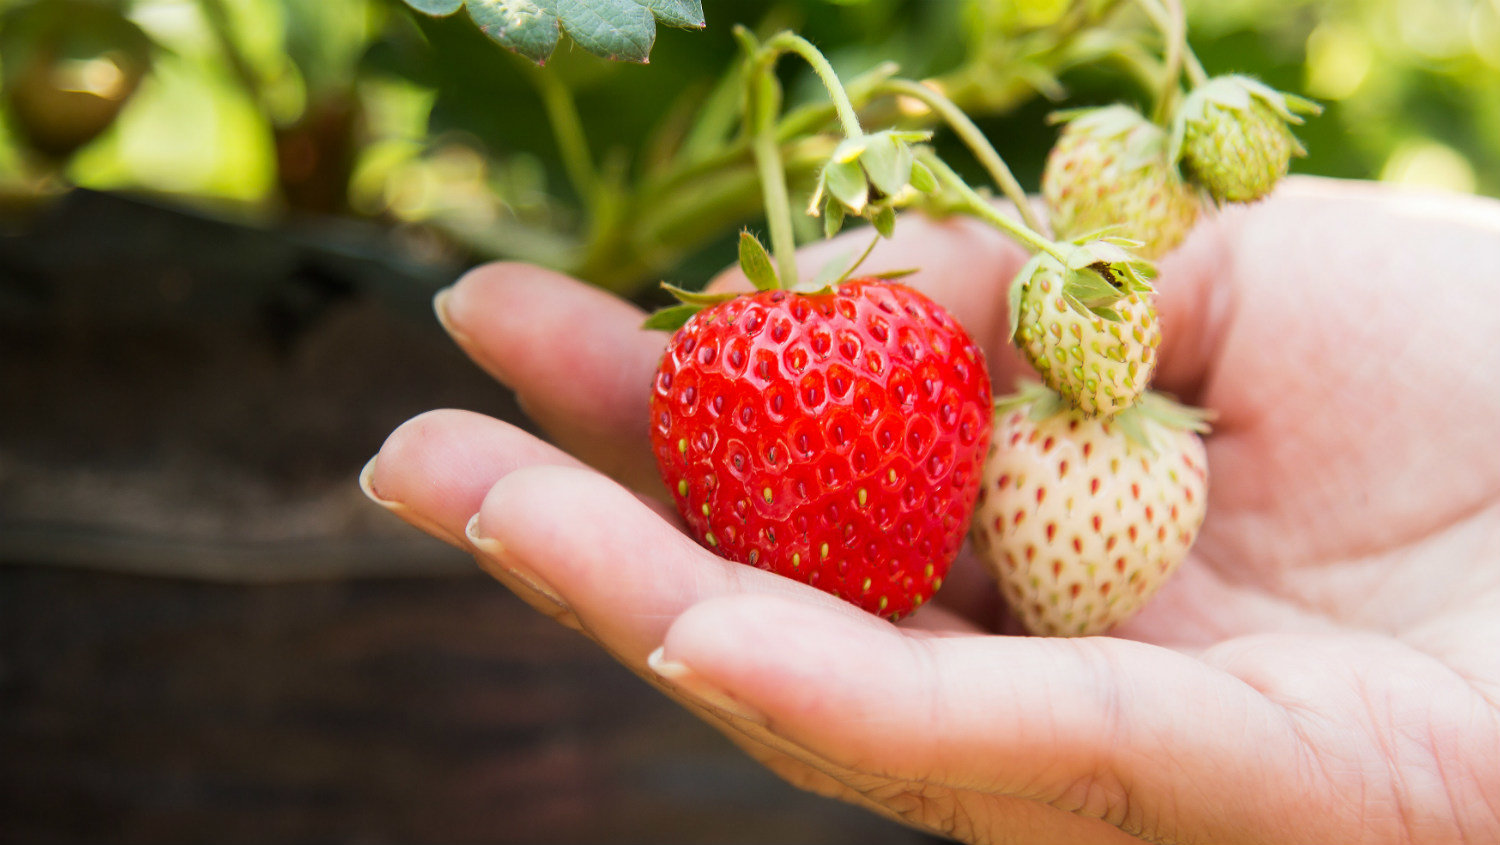 Agriculture strawberry hand